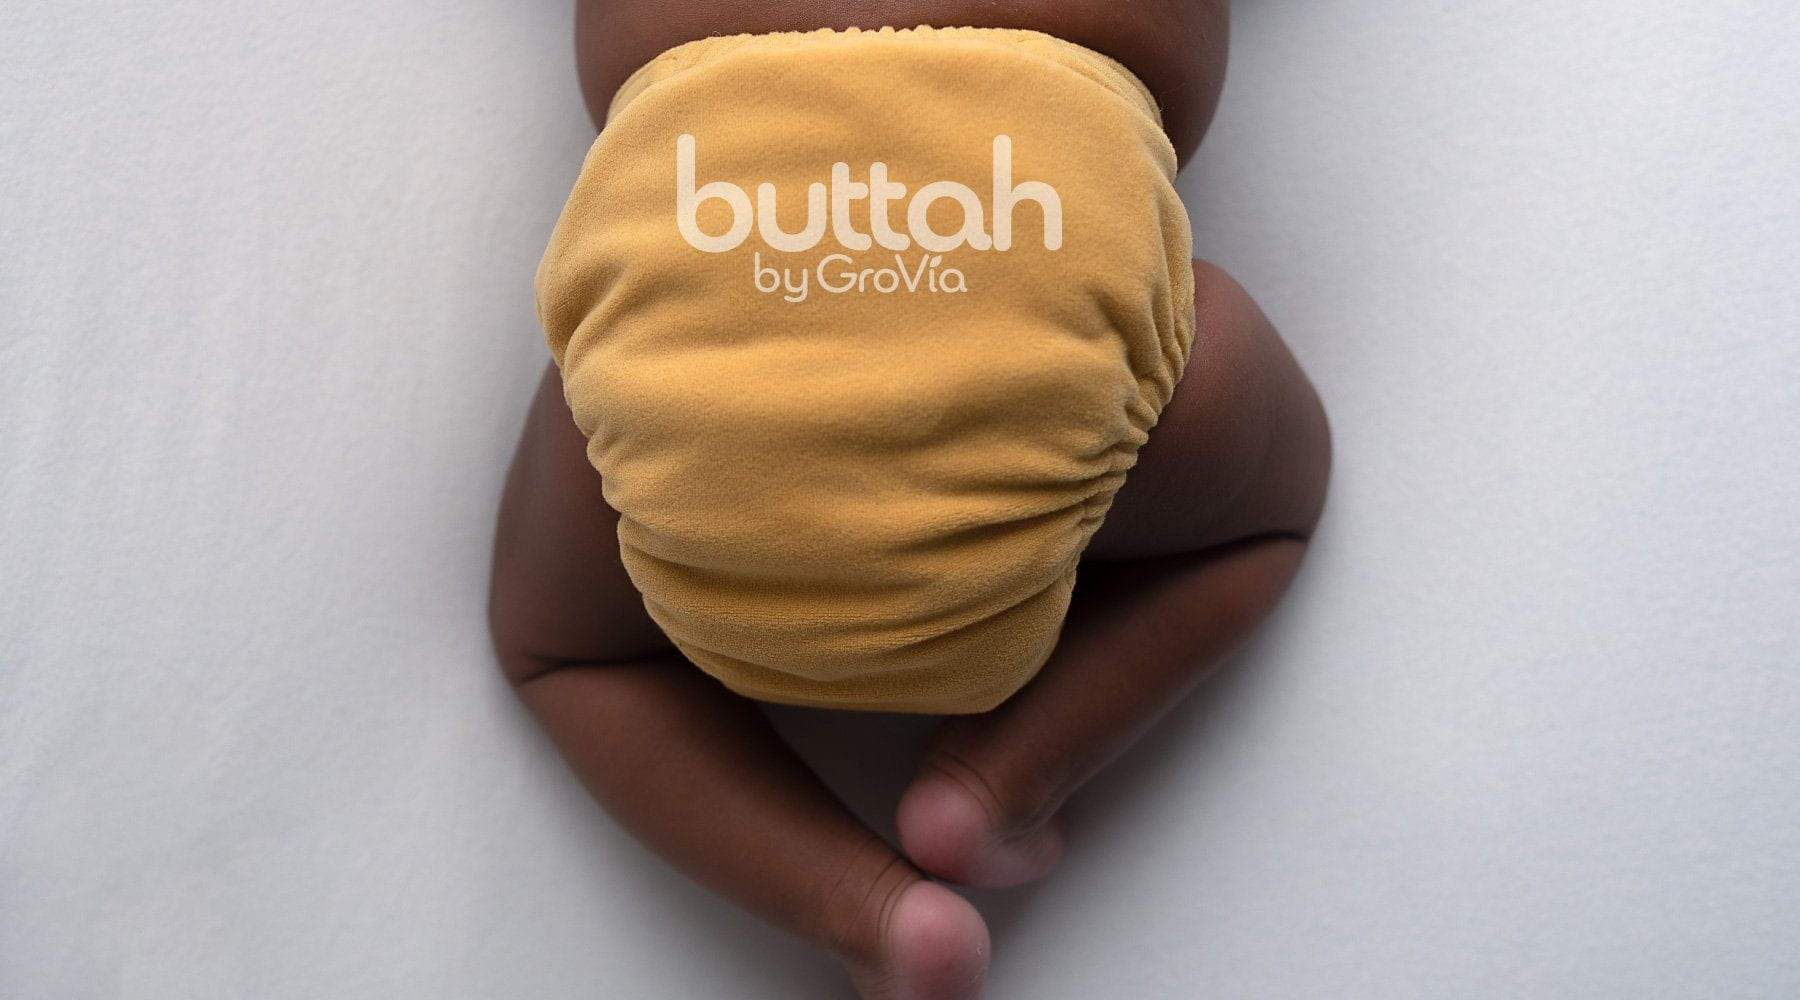 Buttah Velour Diapers & More